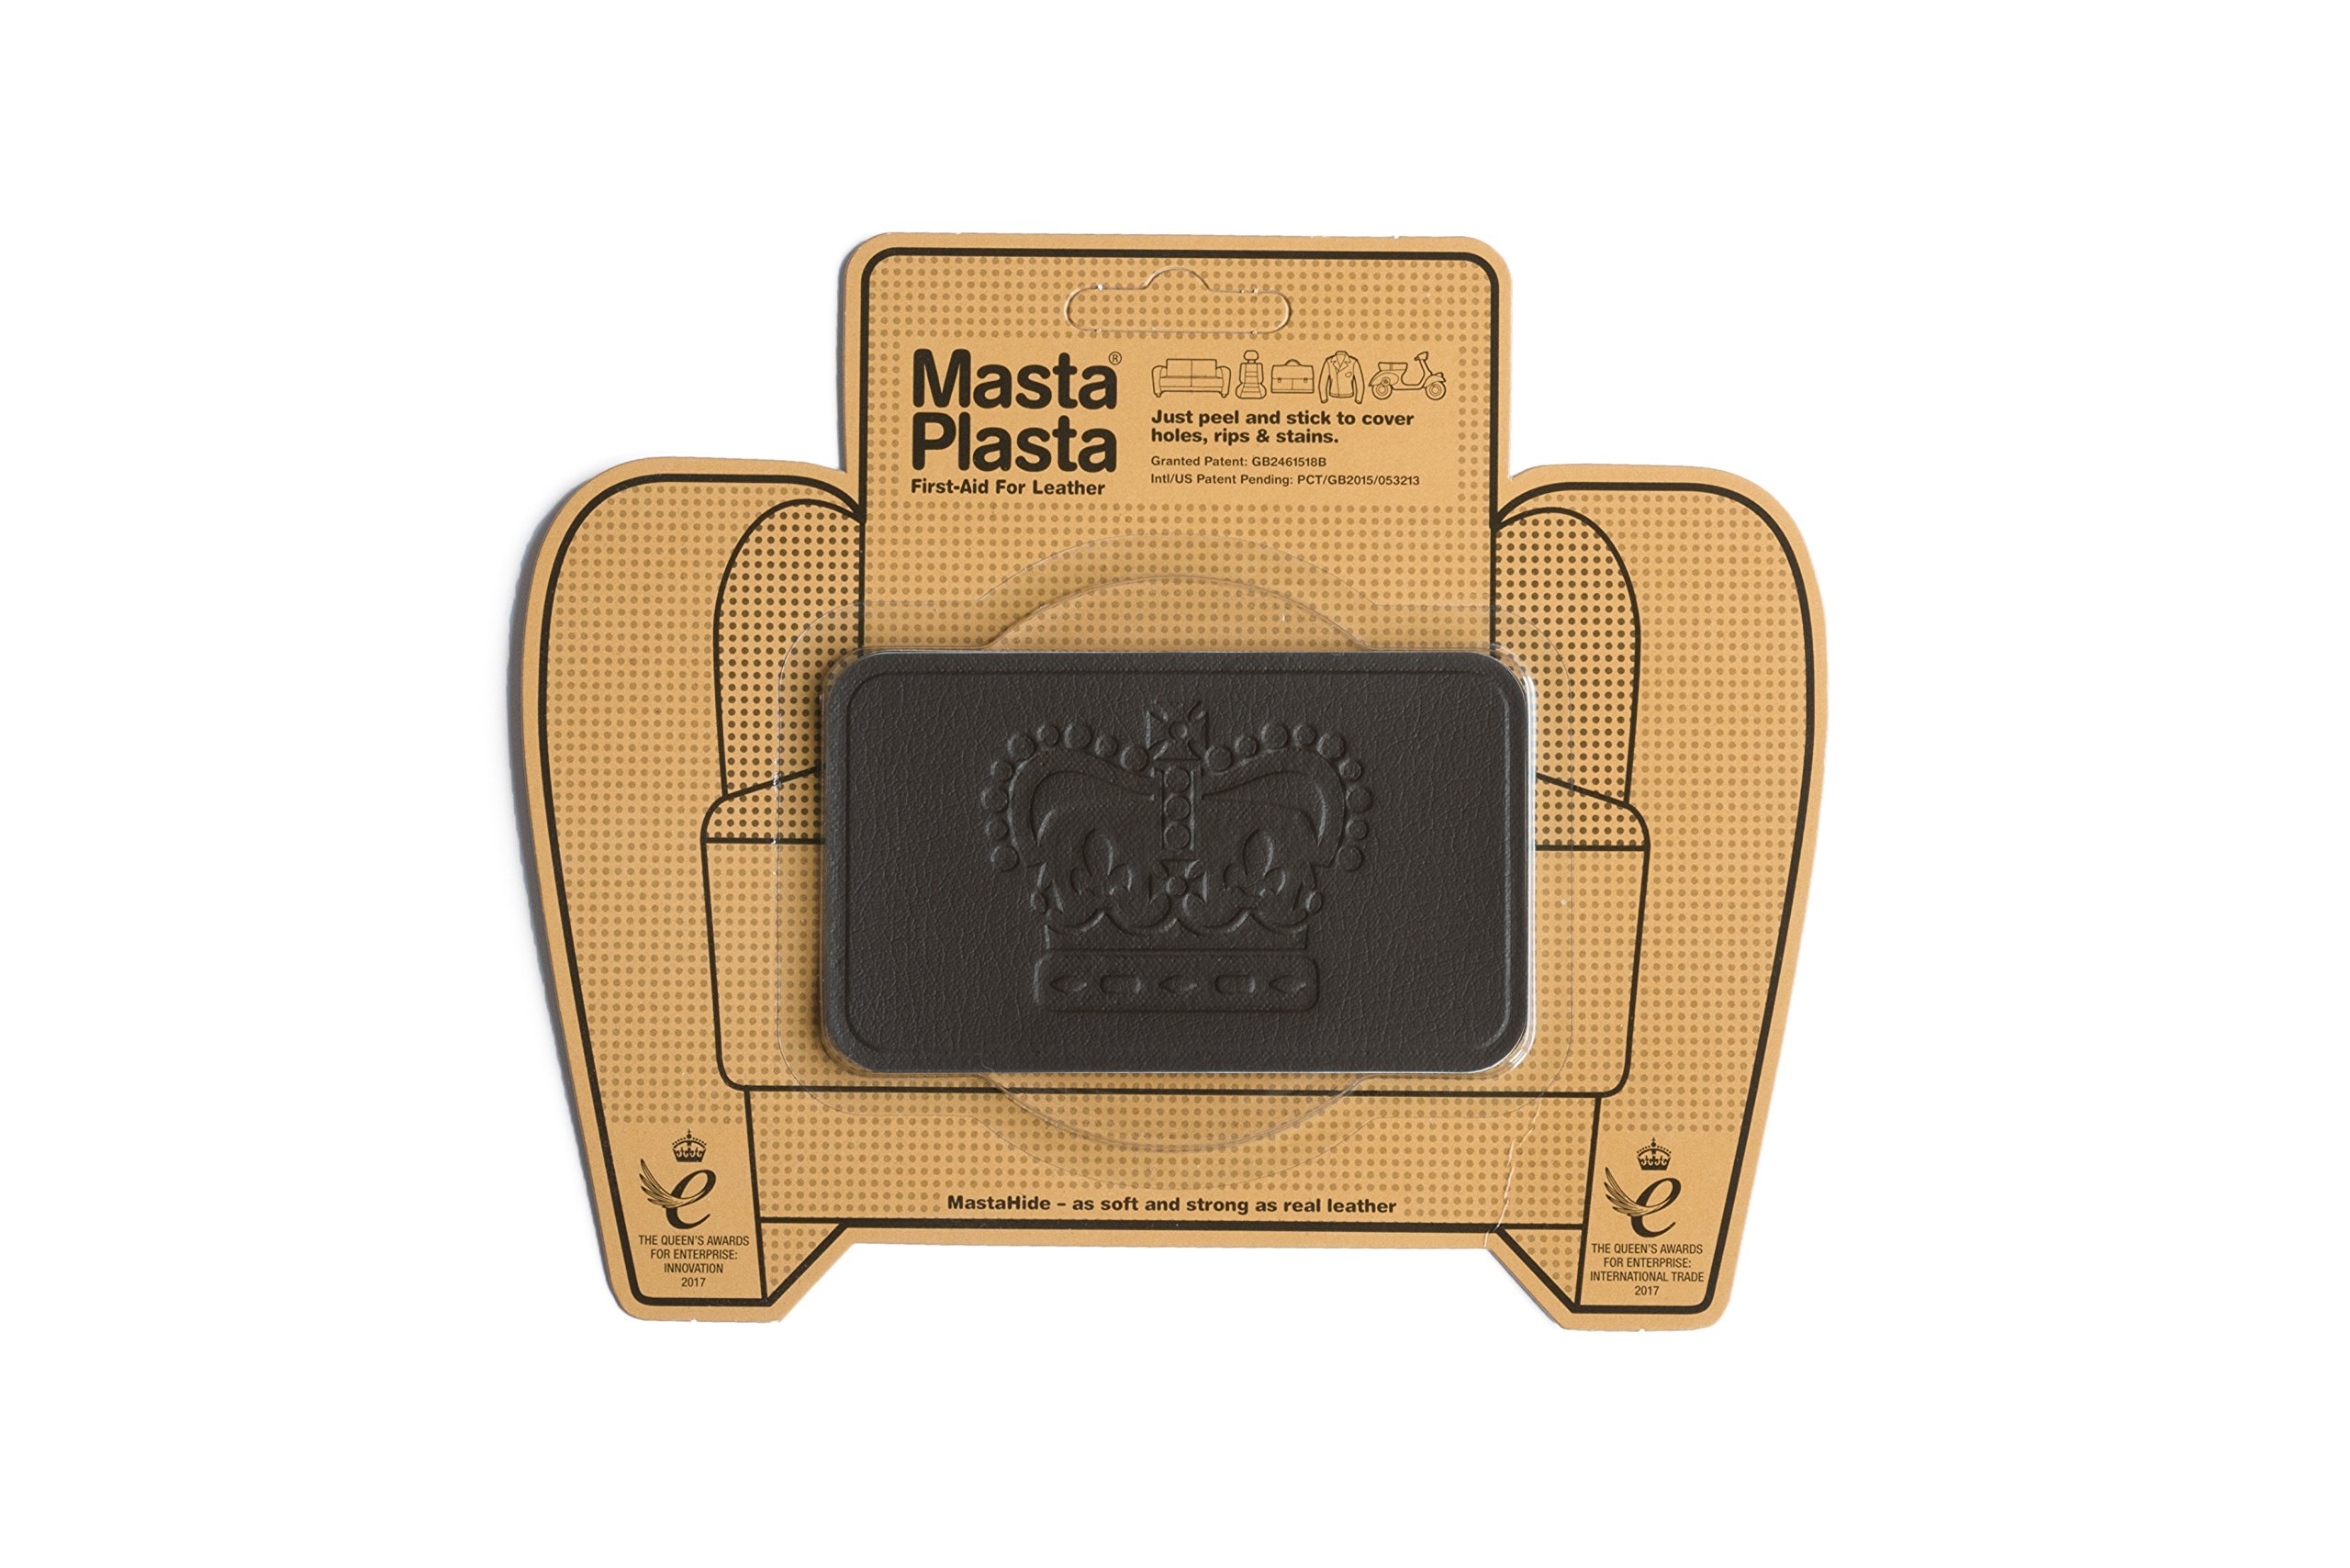 MastaPlasta, Leather Repair Patch, First-aid for Sofas, Car Seats, Handbags, Jackets, etc. Brown Color, Crown 4-inch by 2.4-inch, Designs Vary